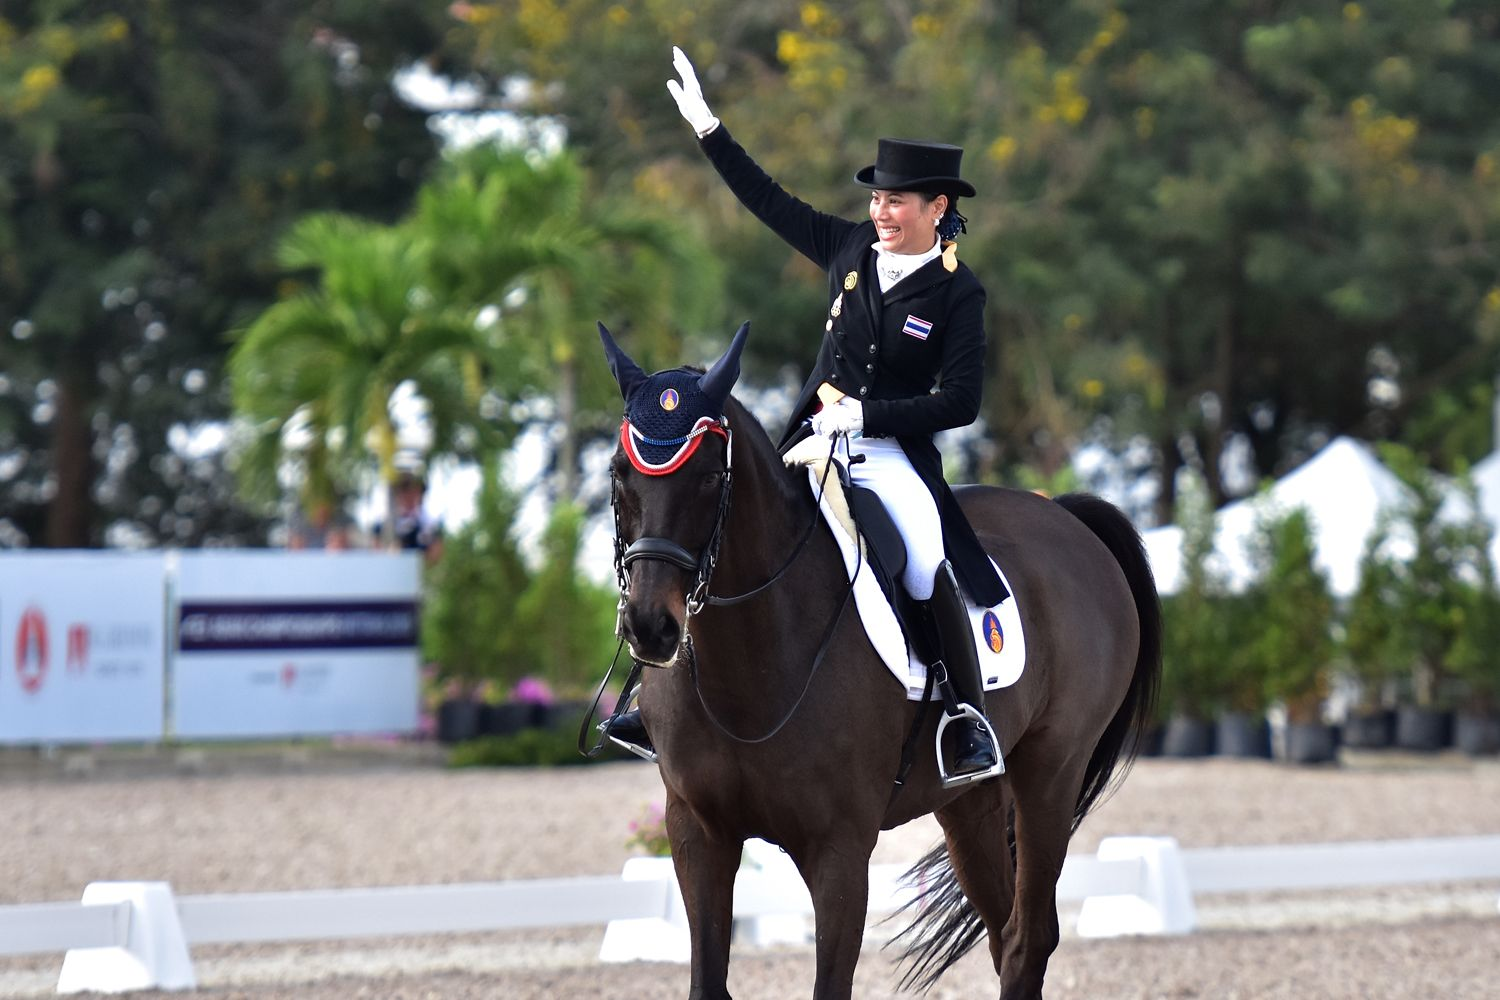 The Thailand Equestrian Federation Makes History As Host Of Asia's First Equestrian Championship